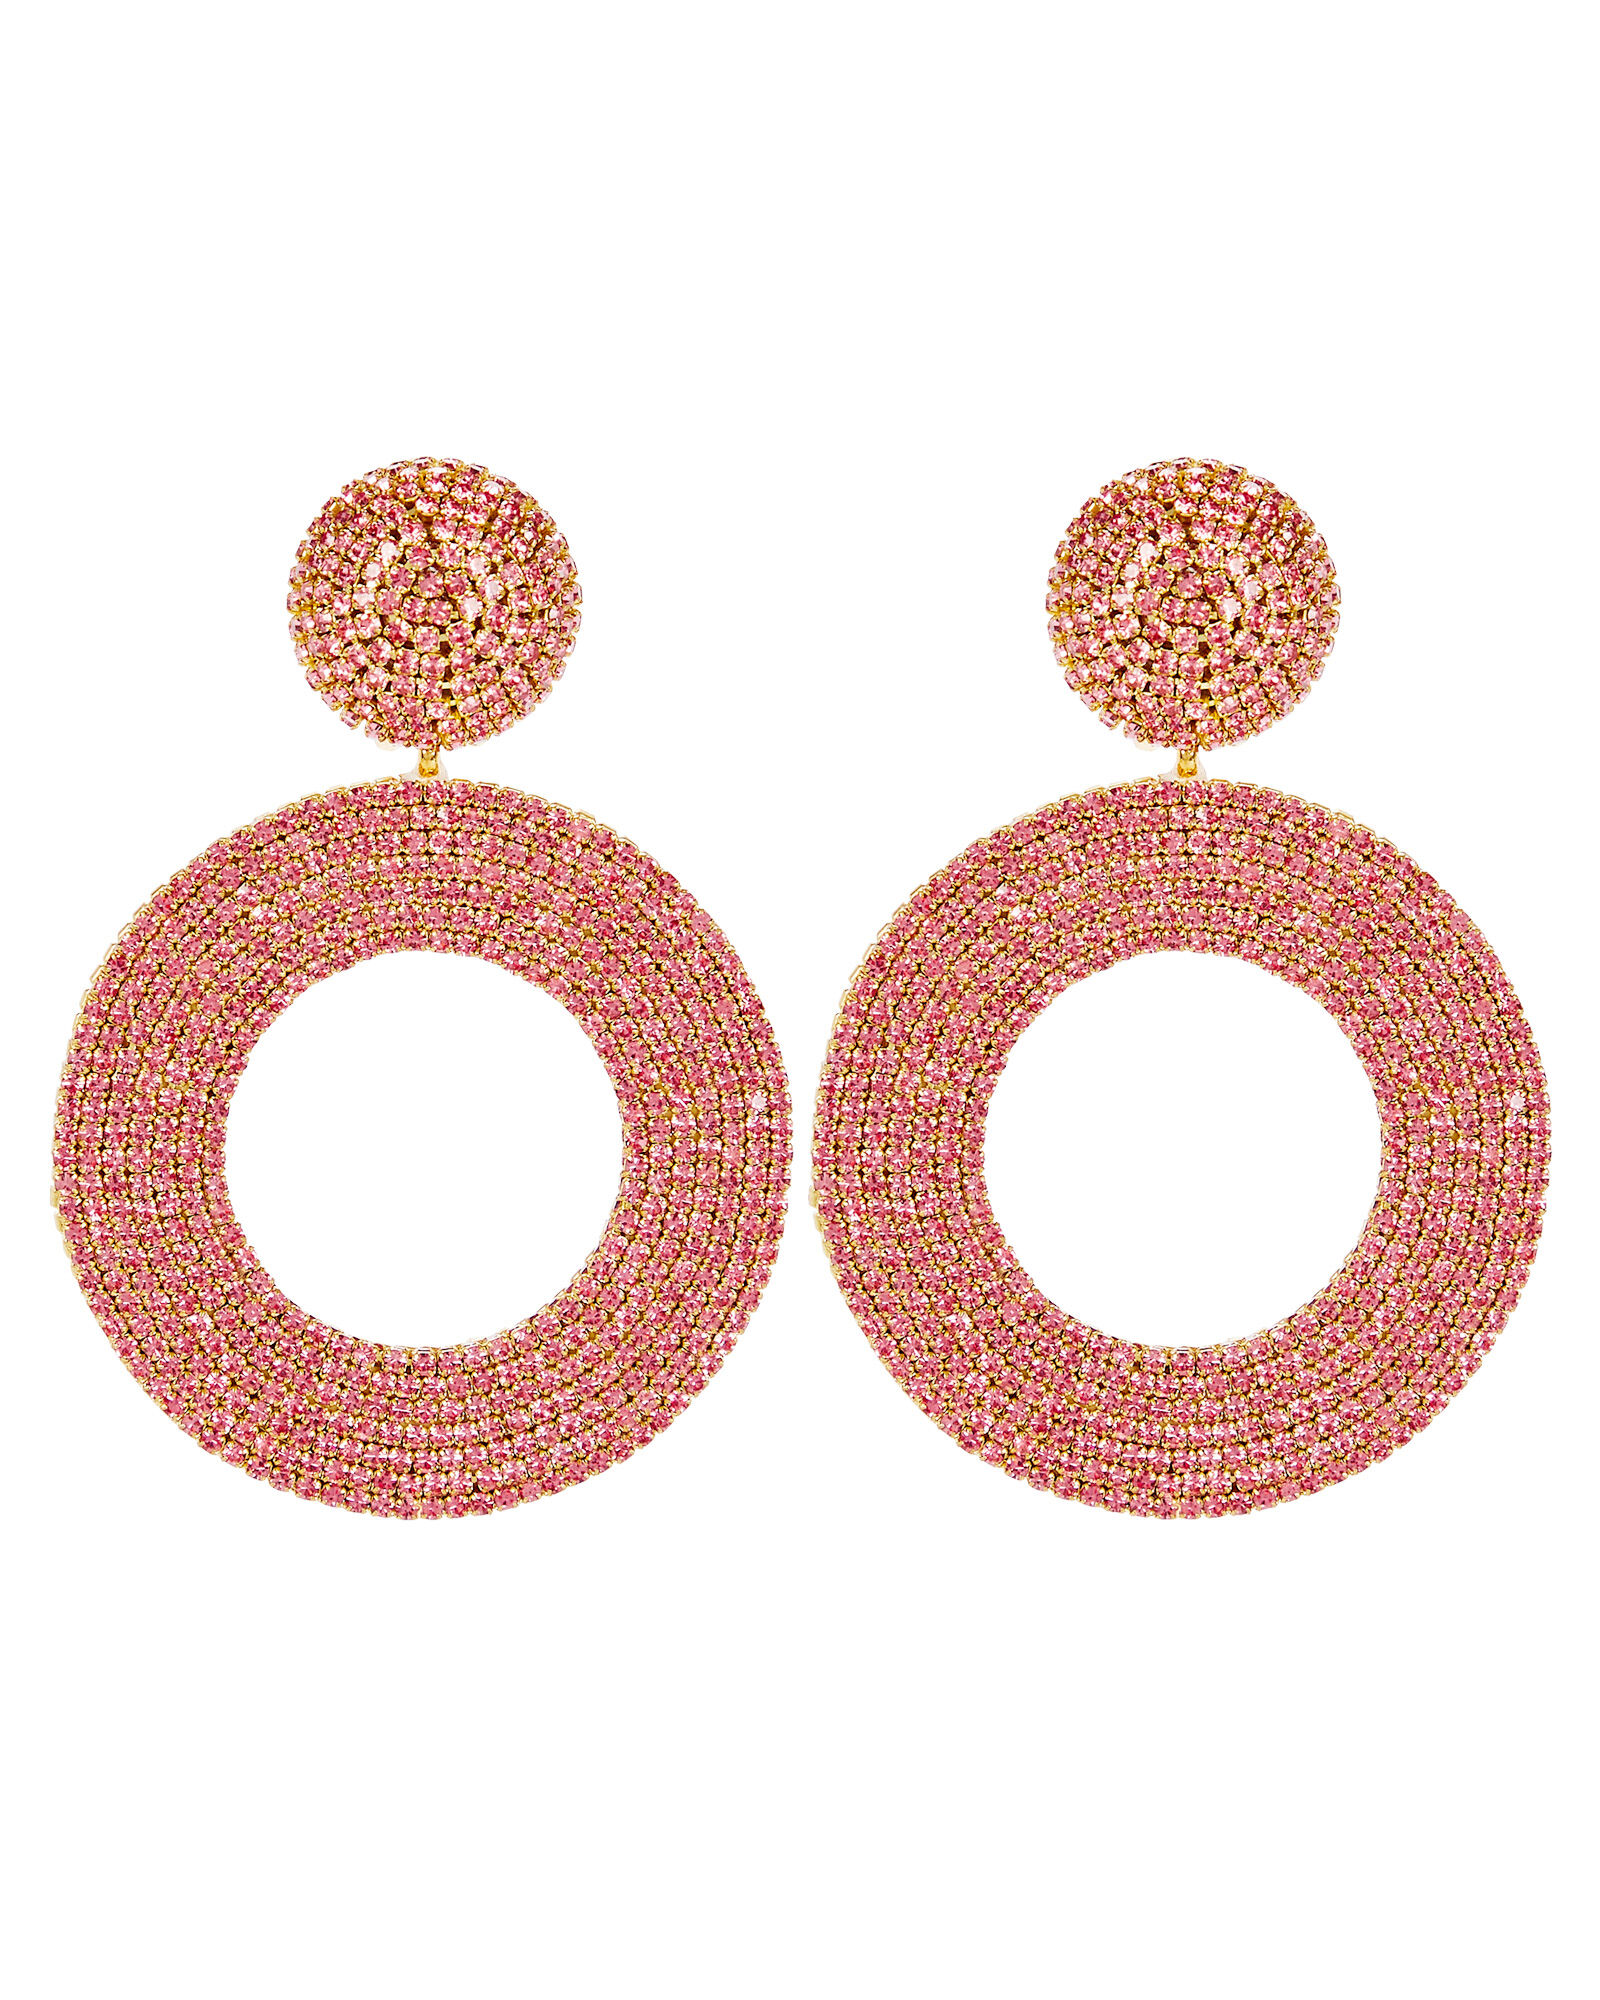 Beaded Circle Earrings, ROSE, hi-res